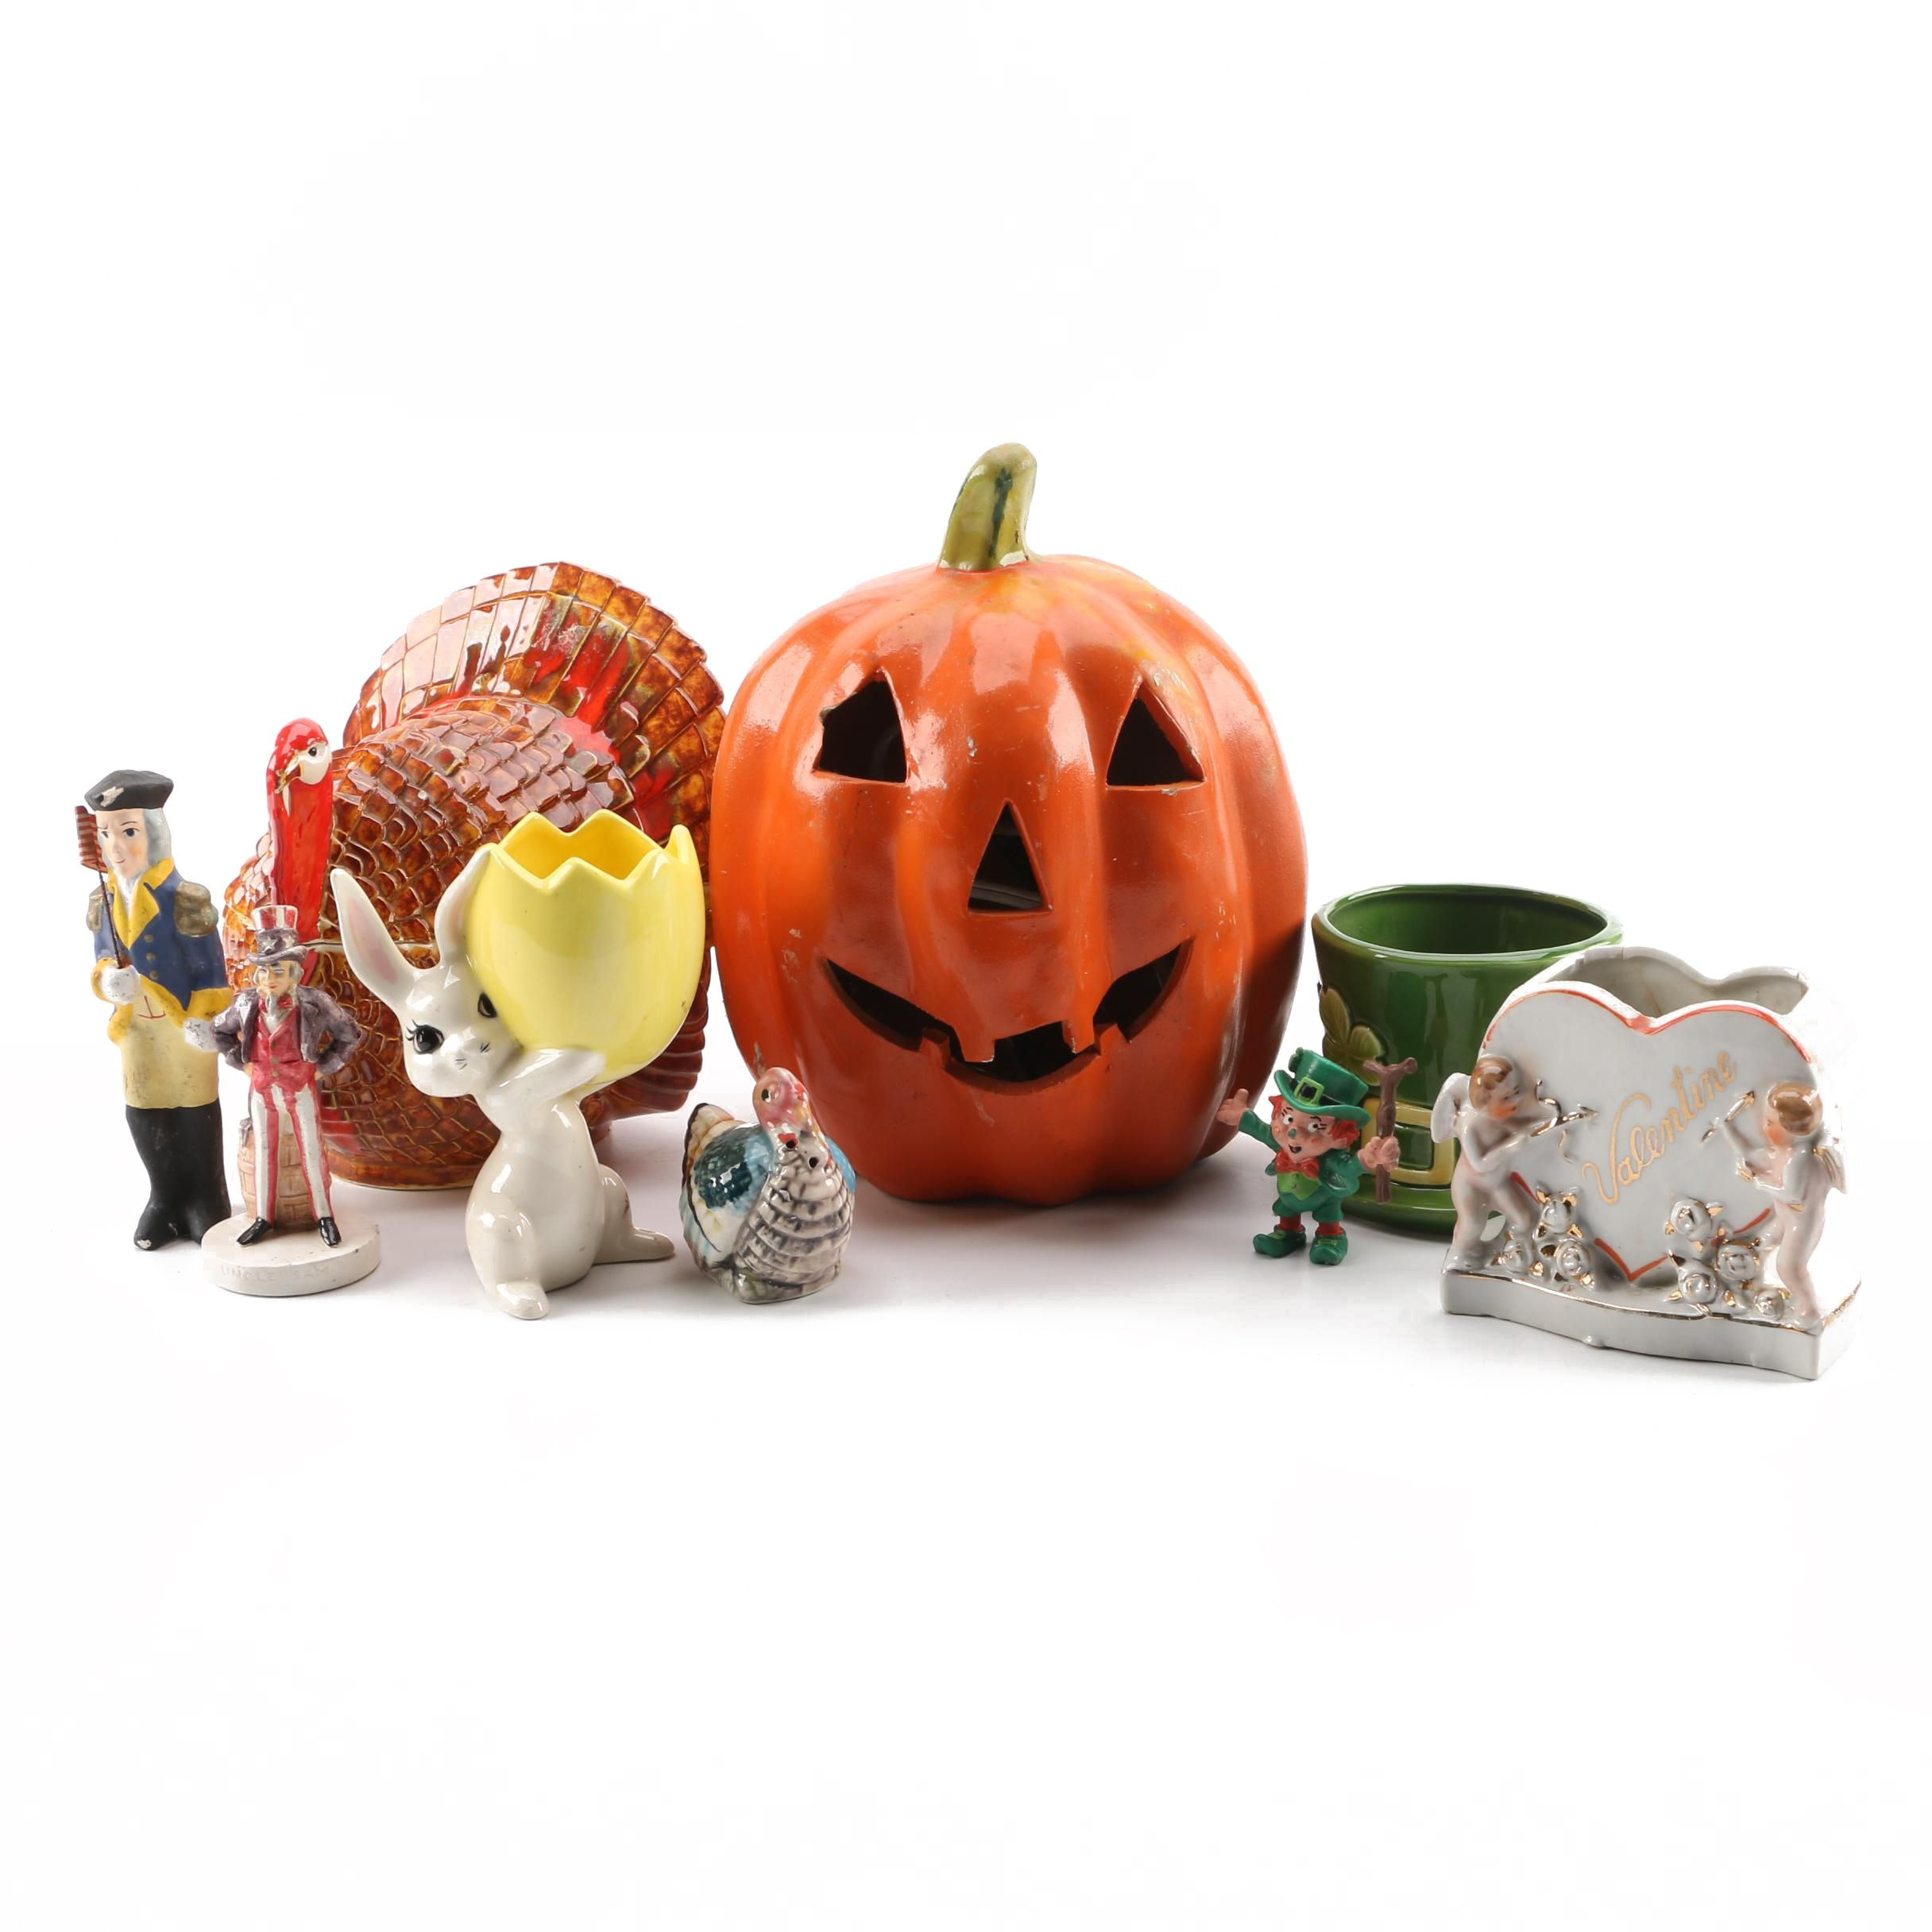 Holiday Ceramic Decor for Valentines, St Patrick's, Easter, 4th of July & Fall